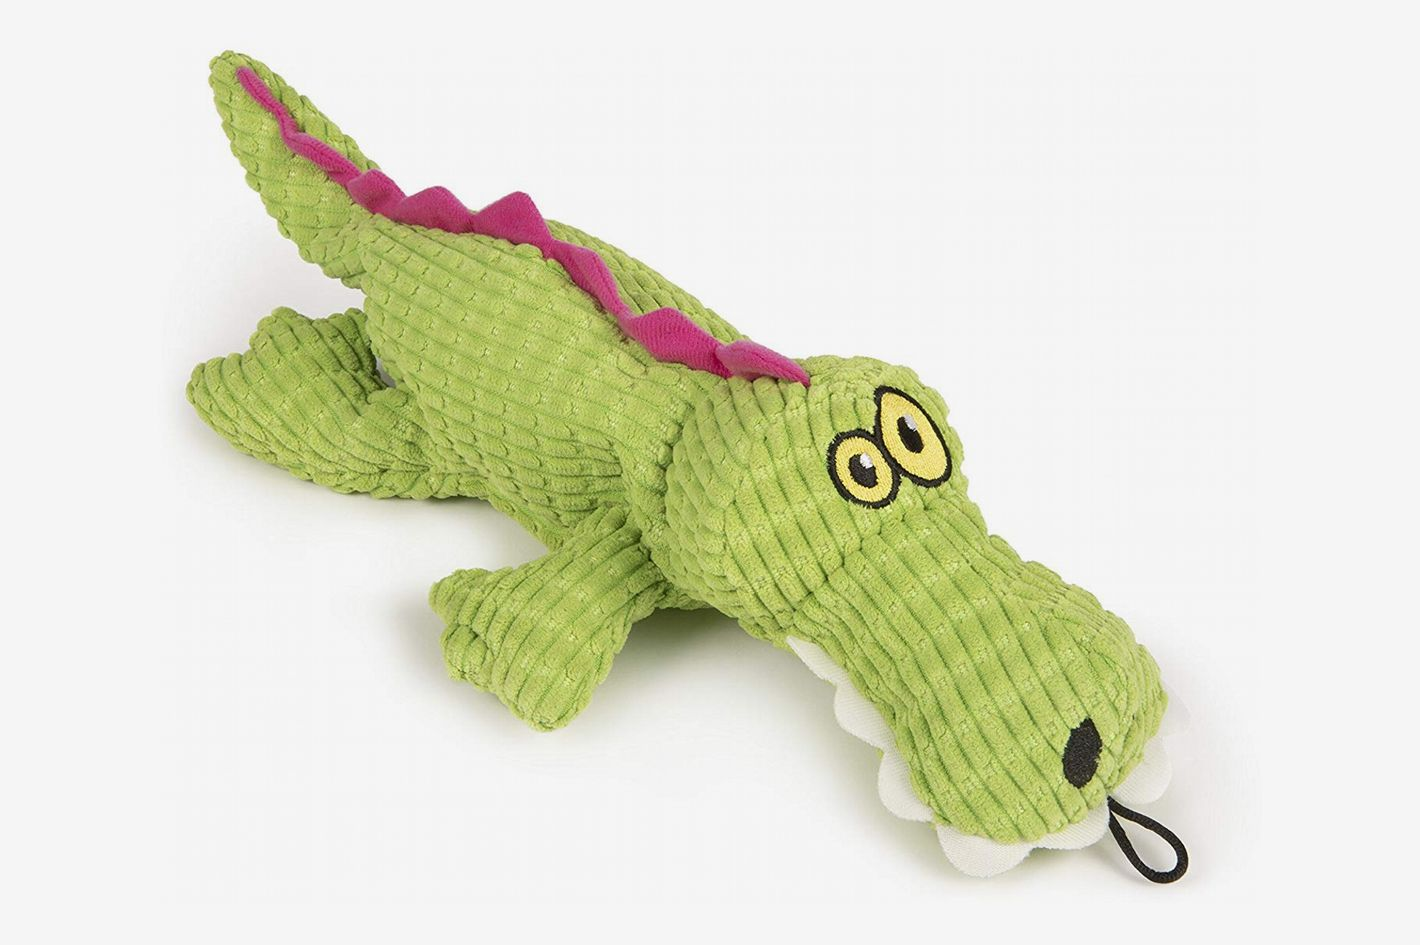 TrustyPup Gator Plush Dog Toy with Silent Squeaker